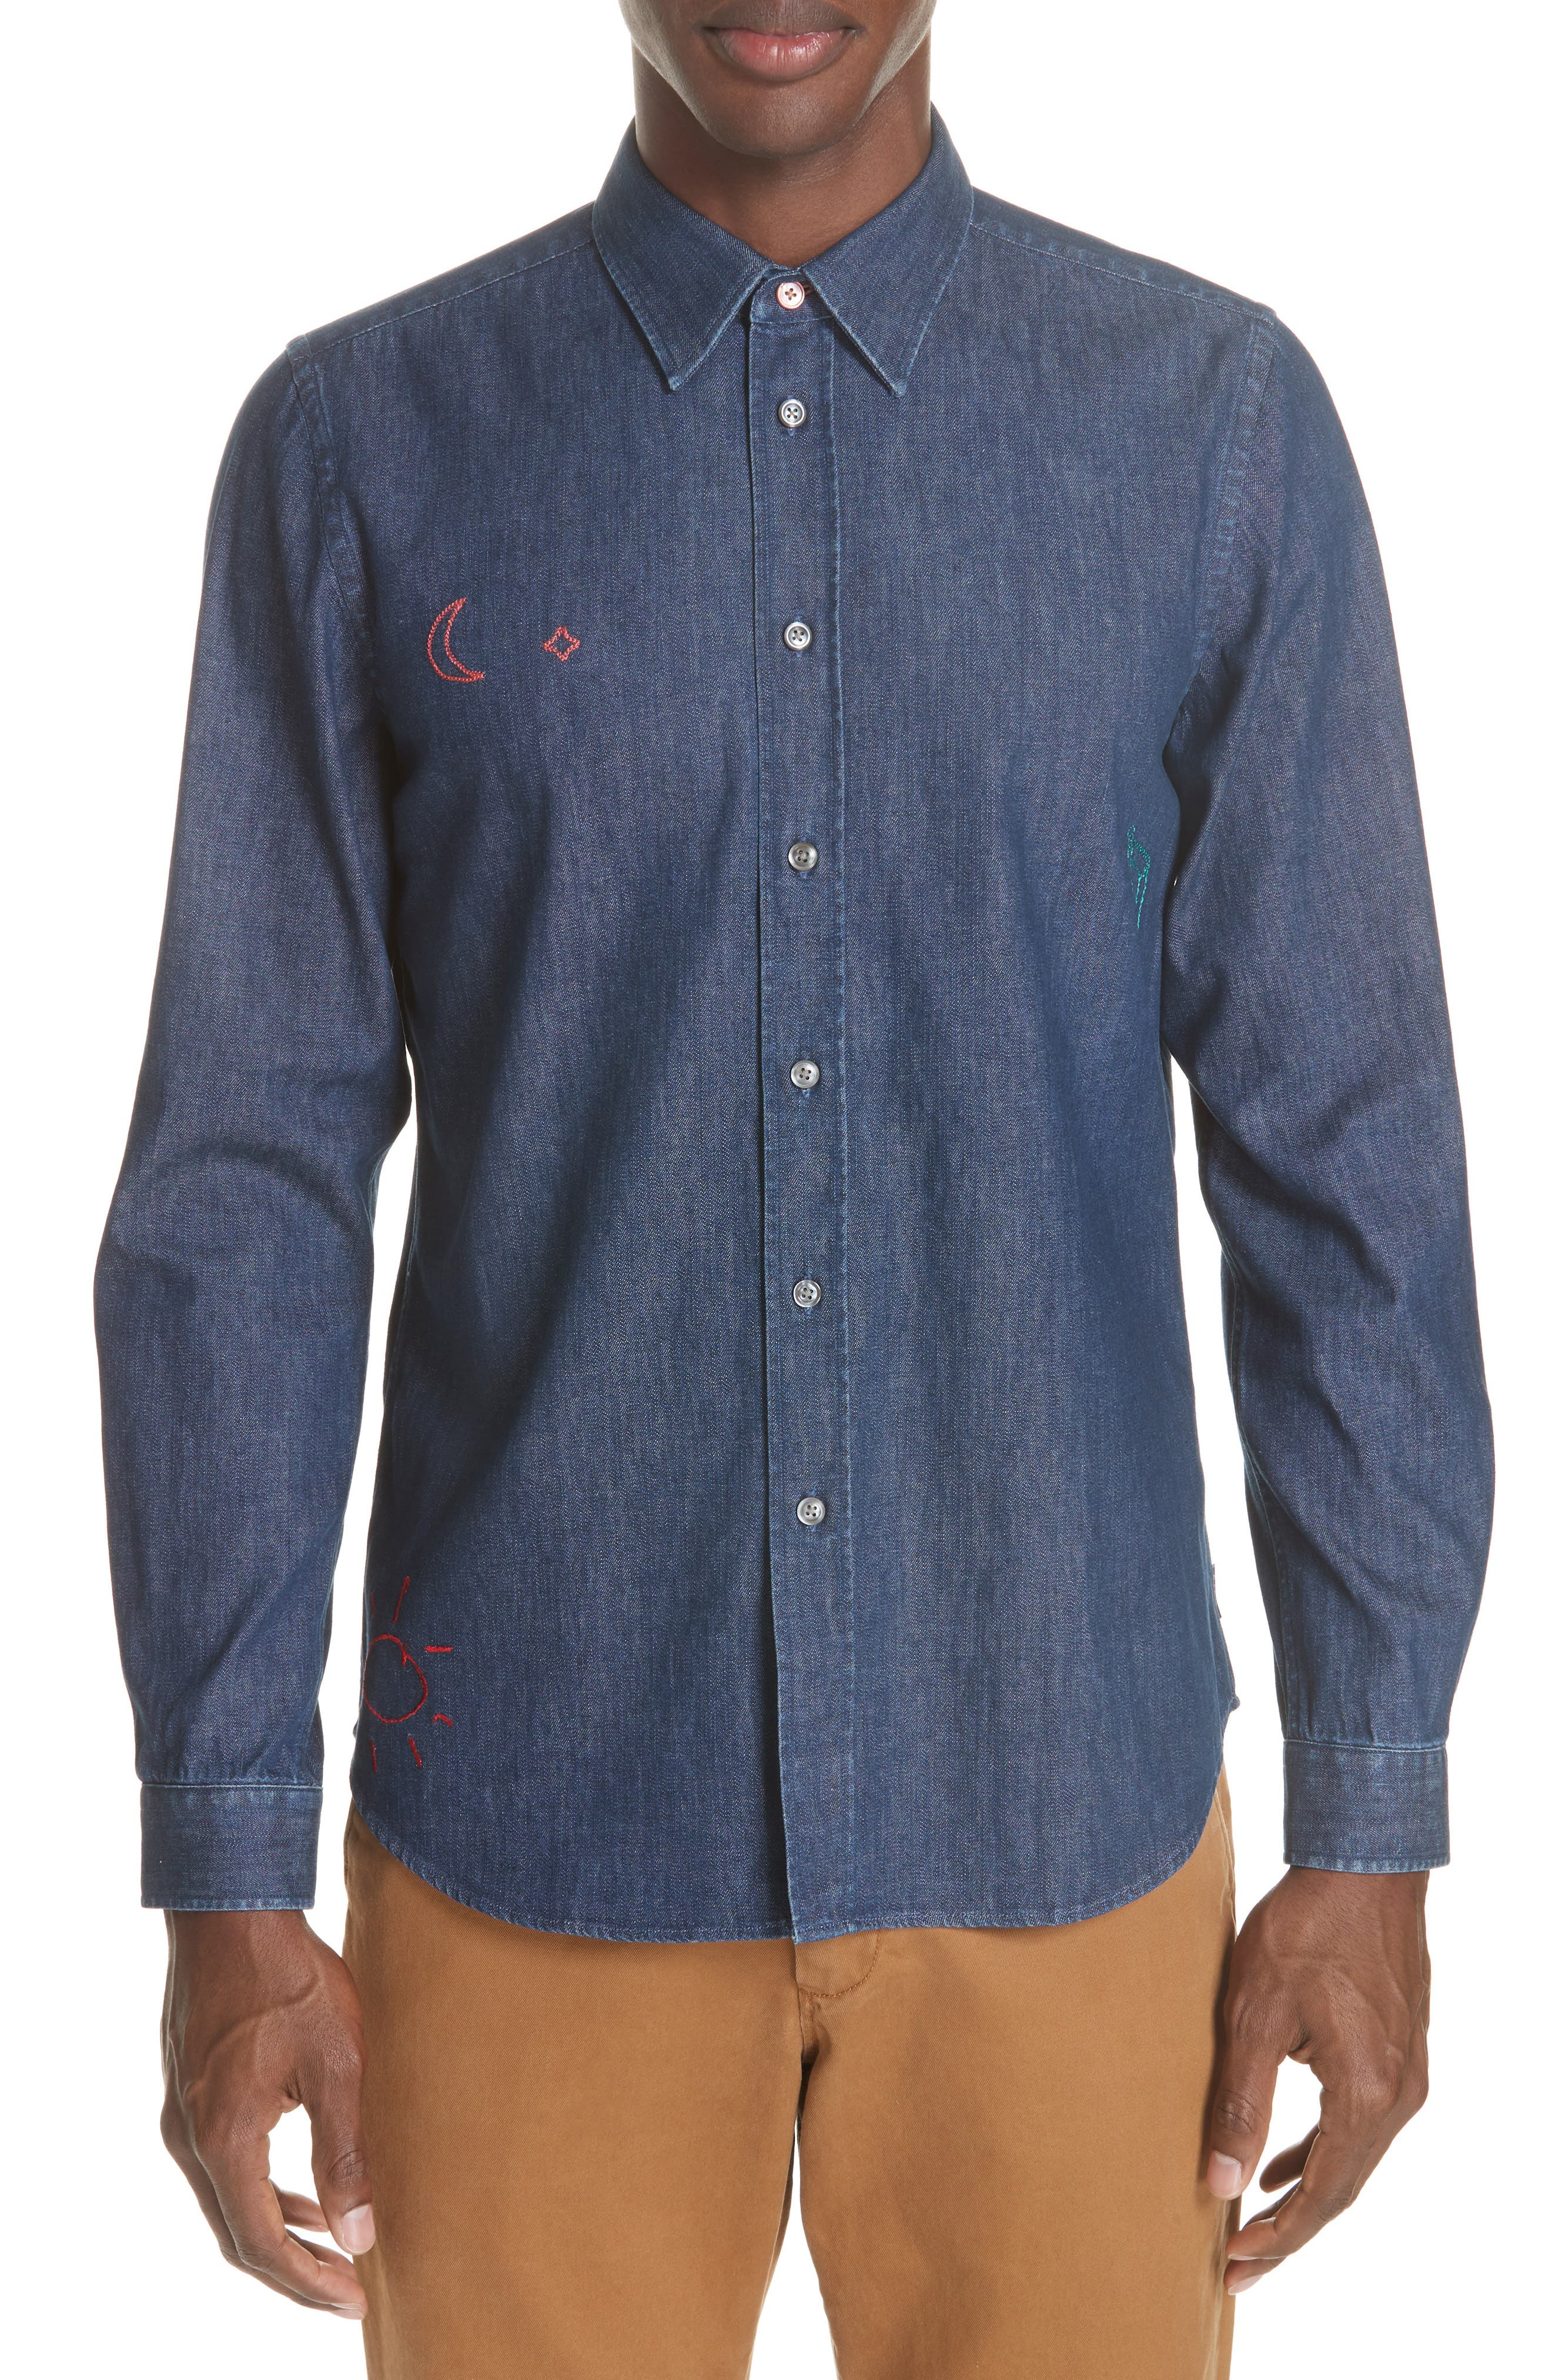 PS PAUL SMITH Denim Shirt with Embroidery, Main, color, 427